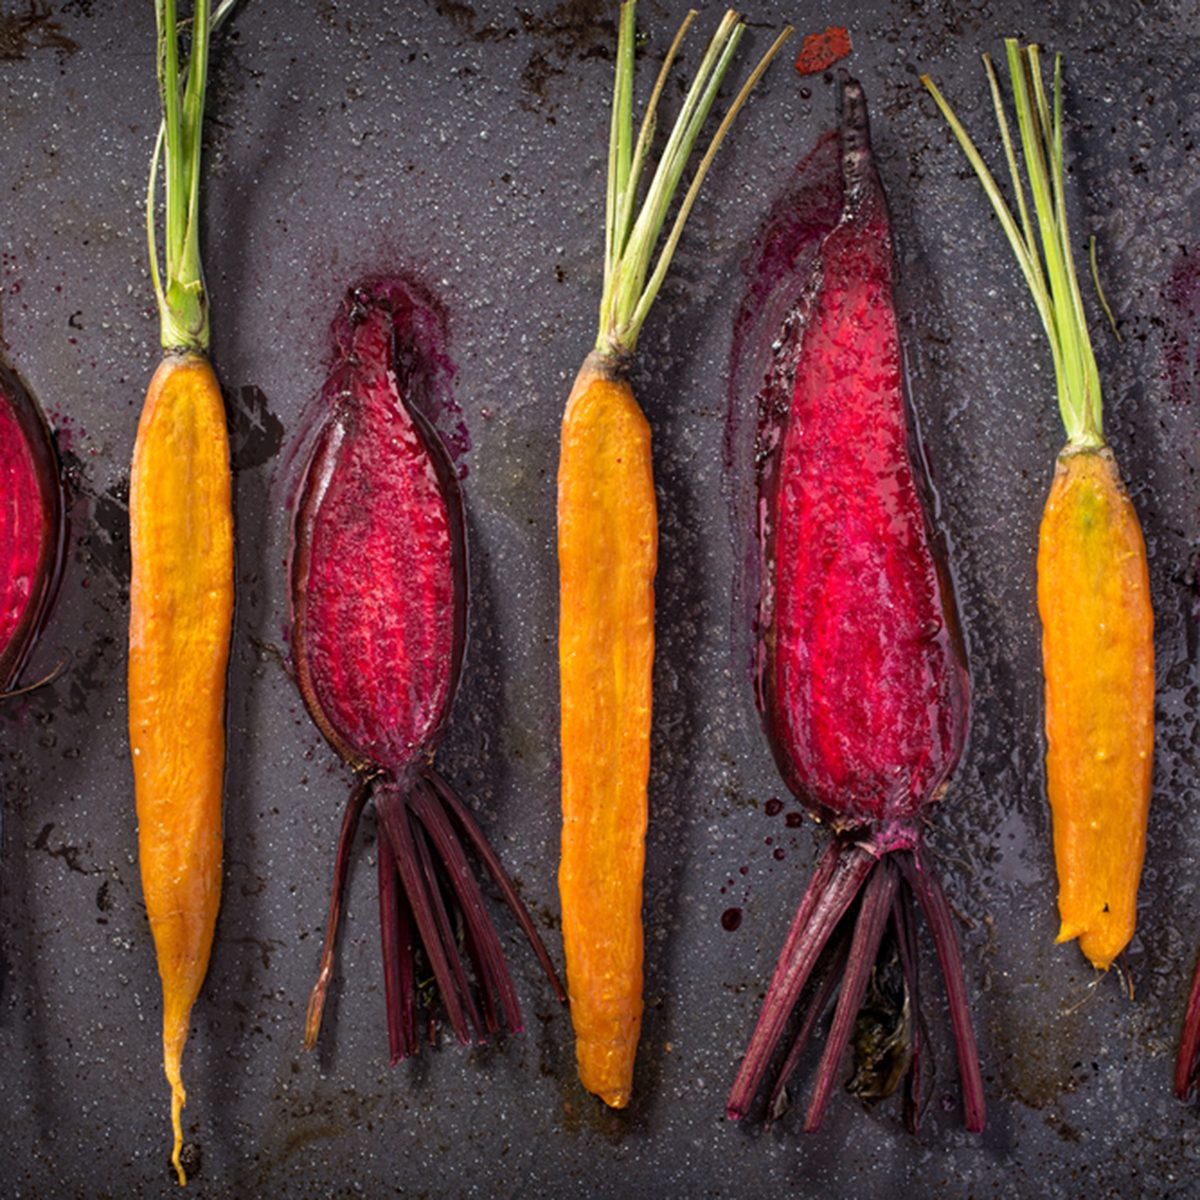 Roasted beets and carrot on baking tray top view